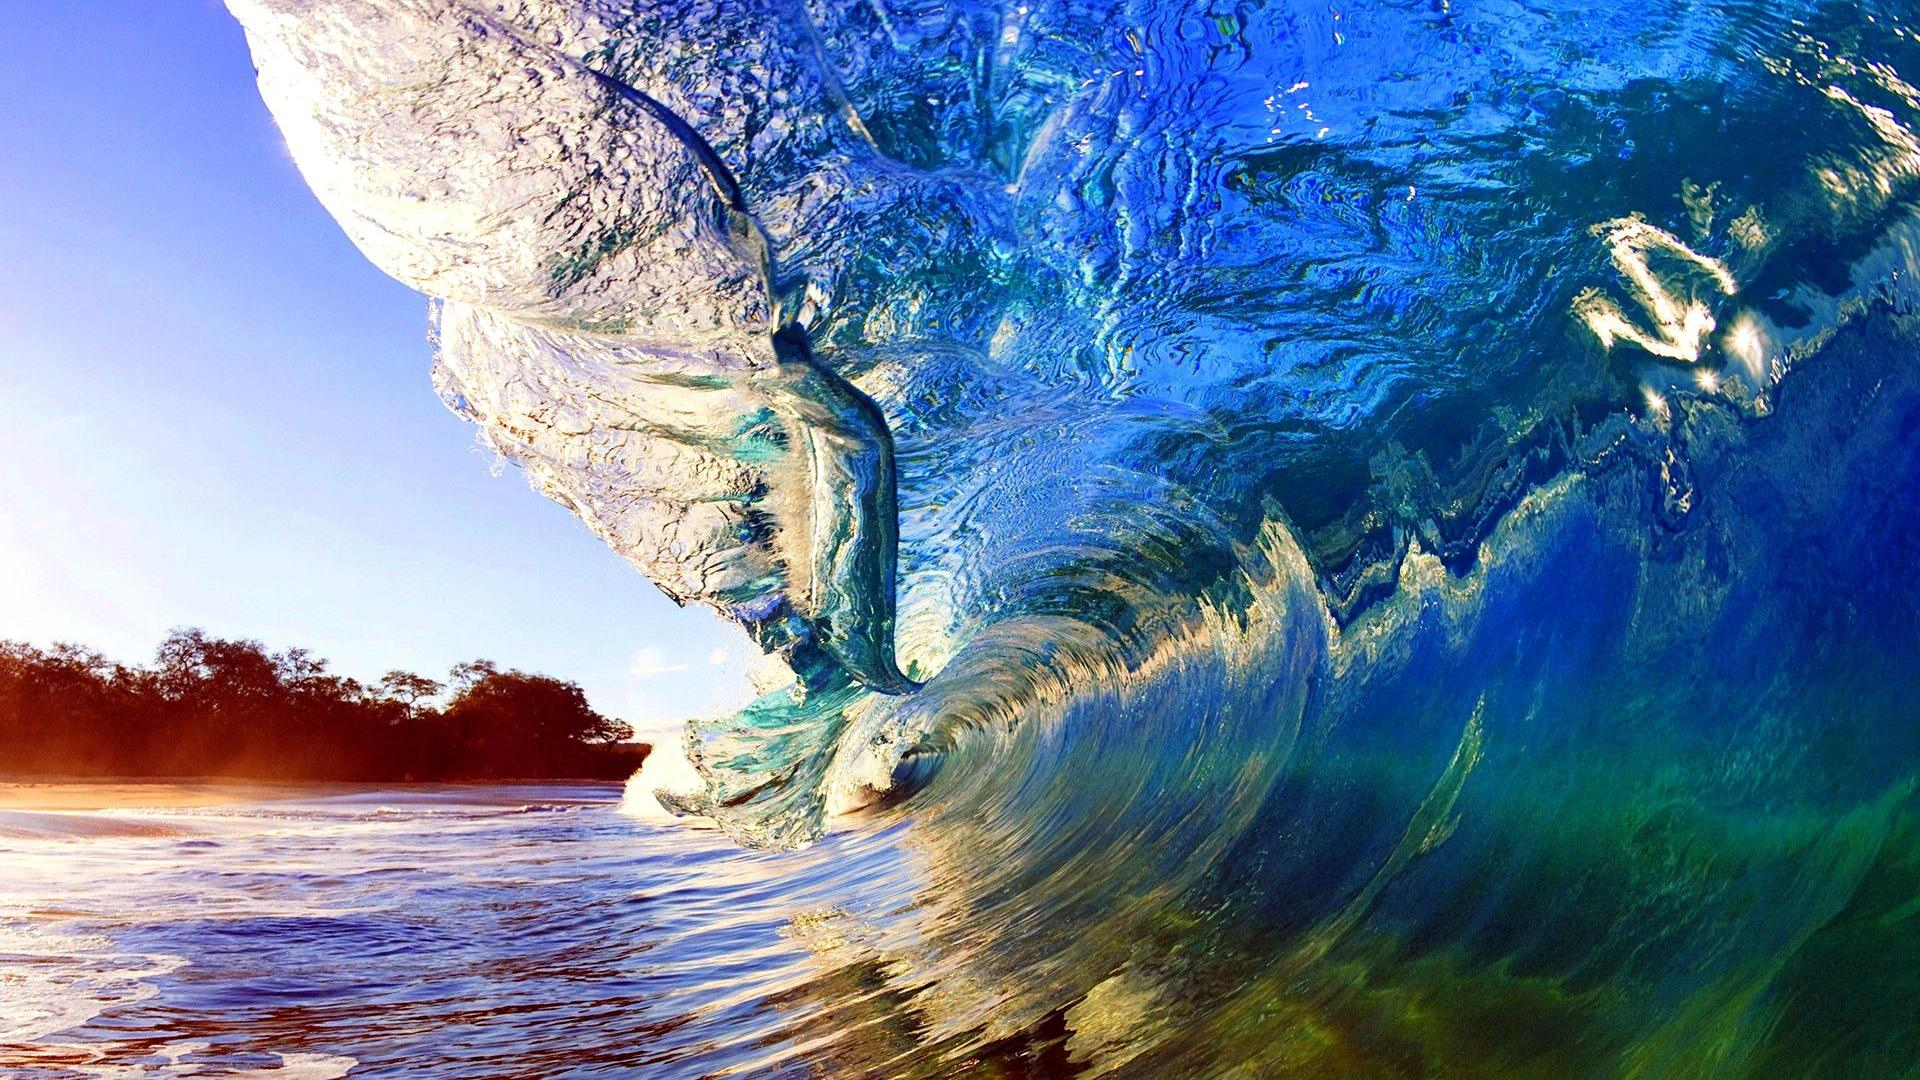 wave backgrounds wallpaper high definition high quality